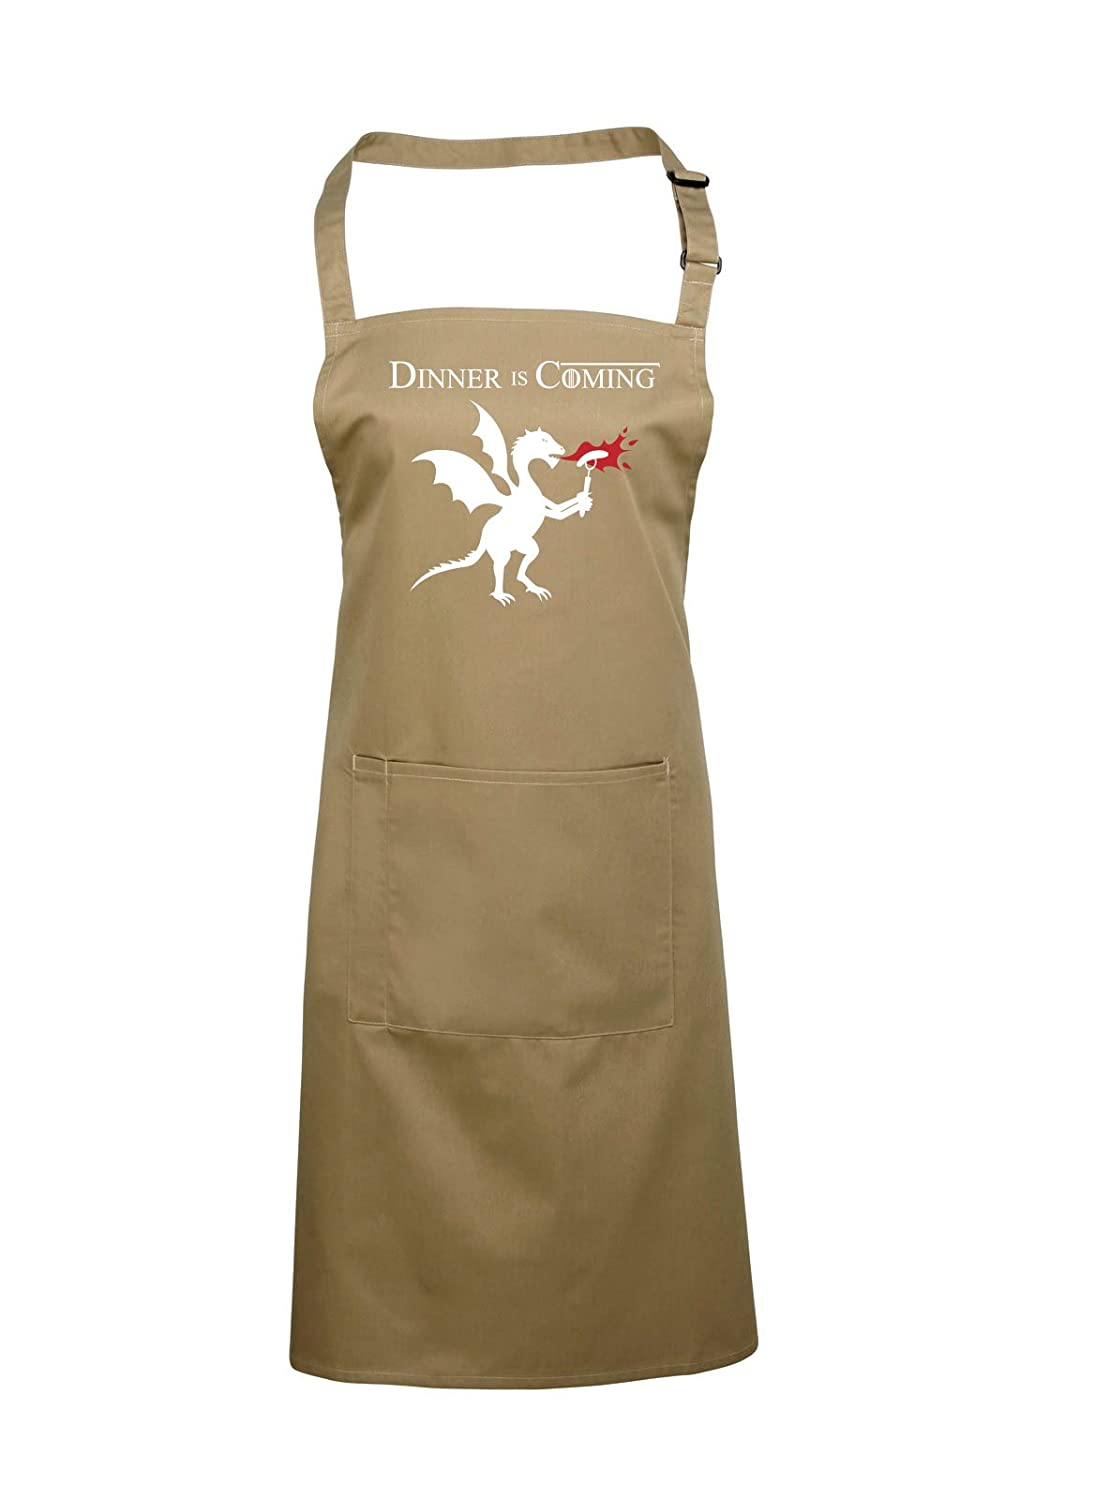 Game of Thrones Apron, Fan Gift Idea, Dinner is Coming, Dragon (Black) Harlequin Designs